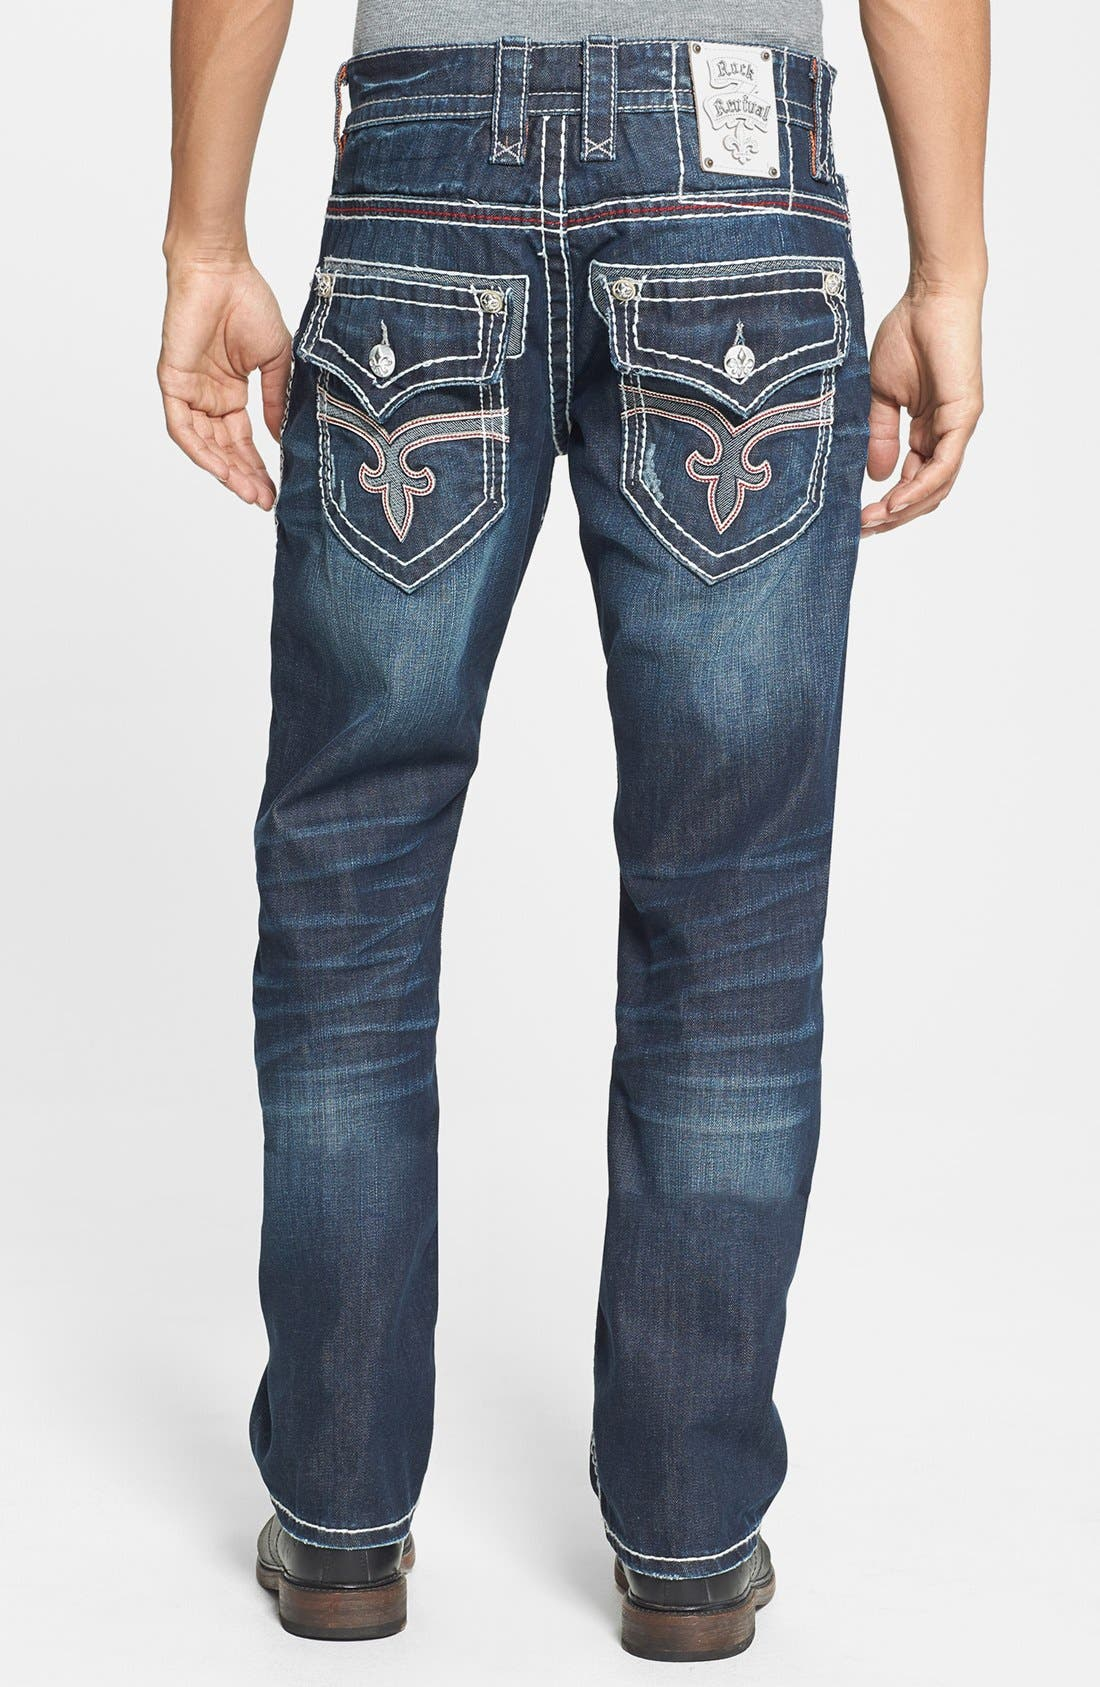 Alternate Image 1 Selected - Rock Revival 'Grayson' Straight Leg Jeans (Dark Blue)